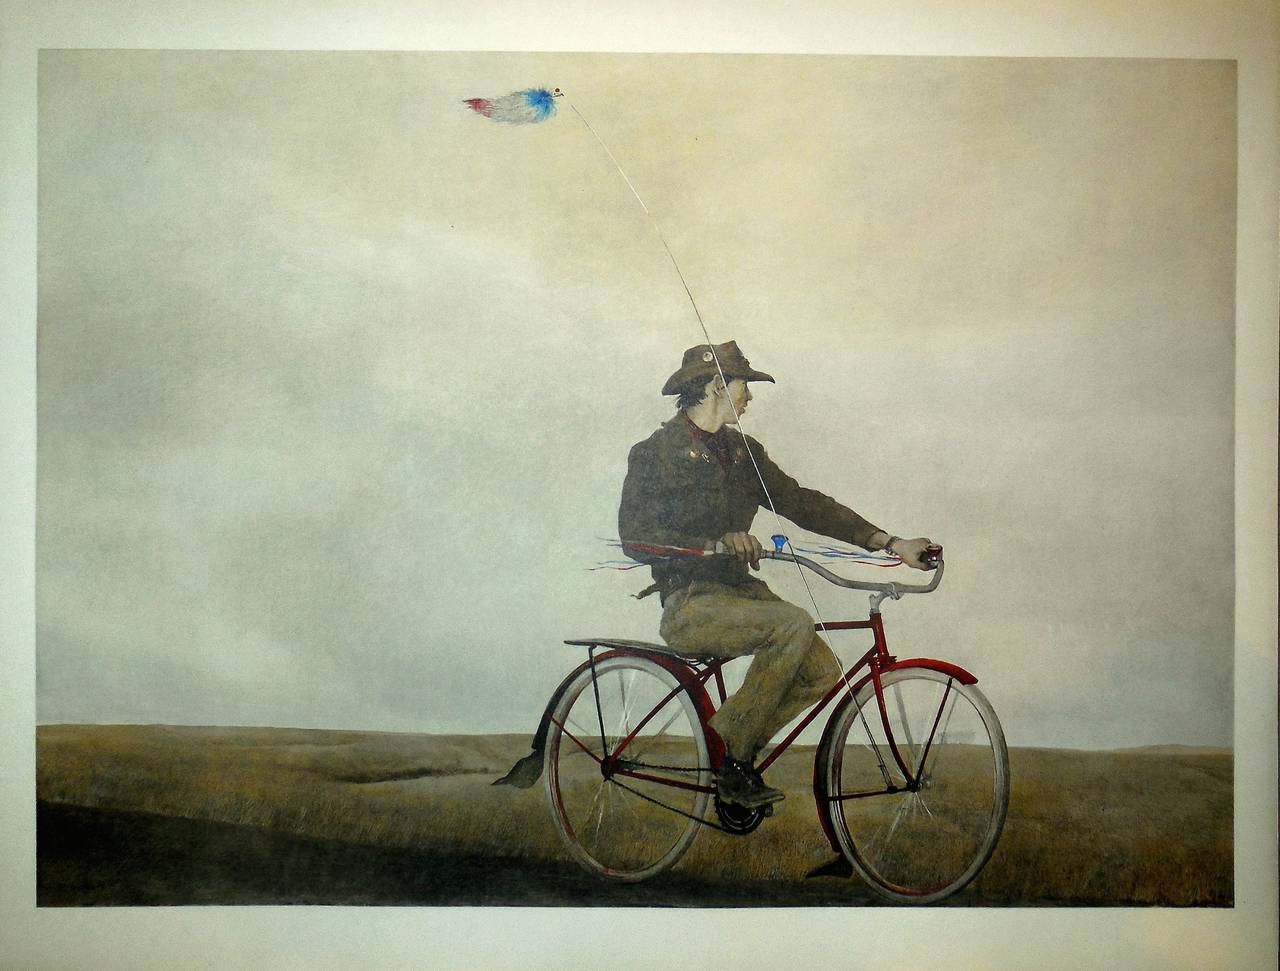 Andrew Wyeth's Young America hangs in the Pennsylvania Academy of Art - But you can buy the image as a postage stamp!